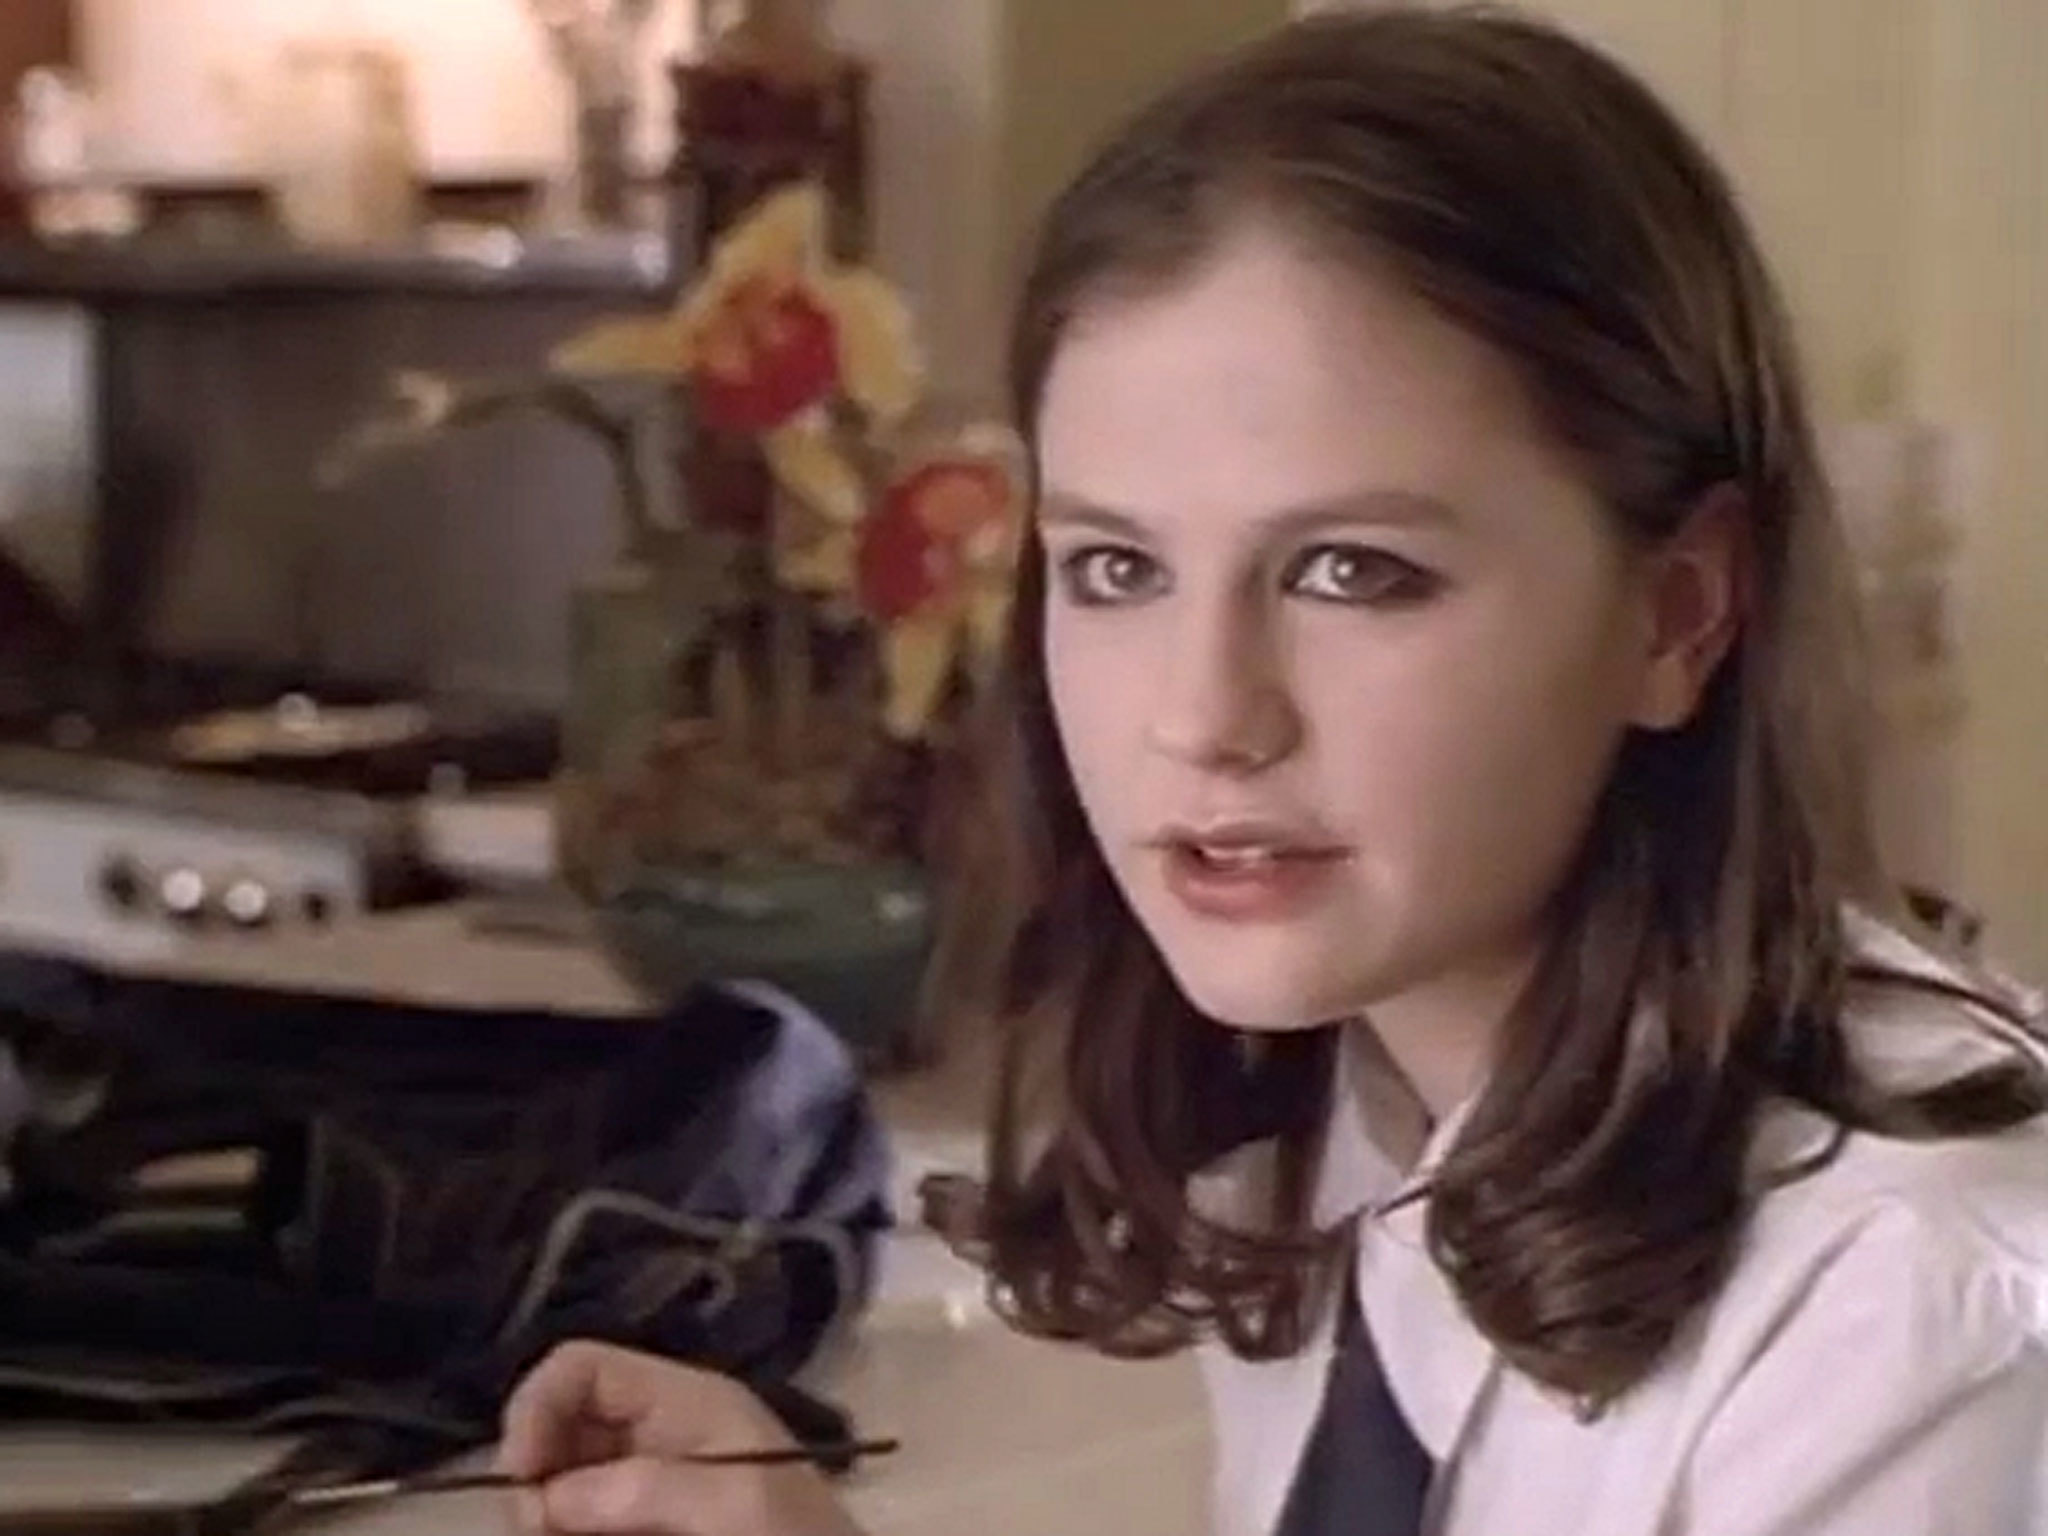 MacKenzie 'Mac' Siler in 'She's All That'